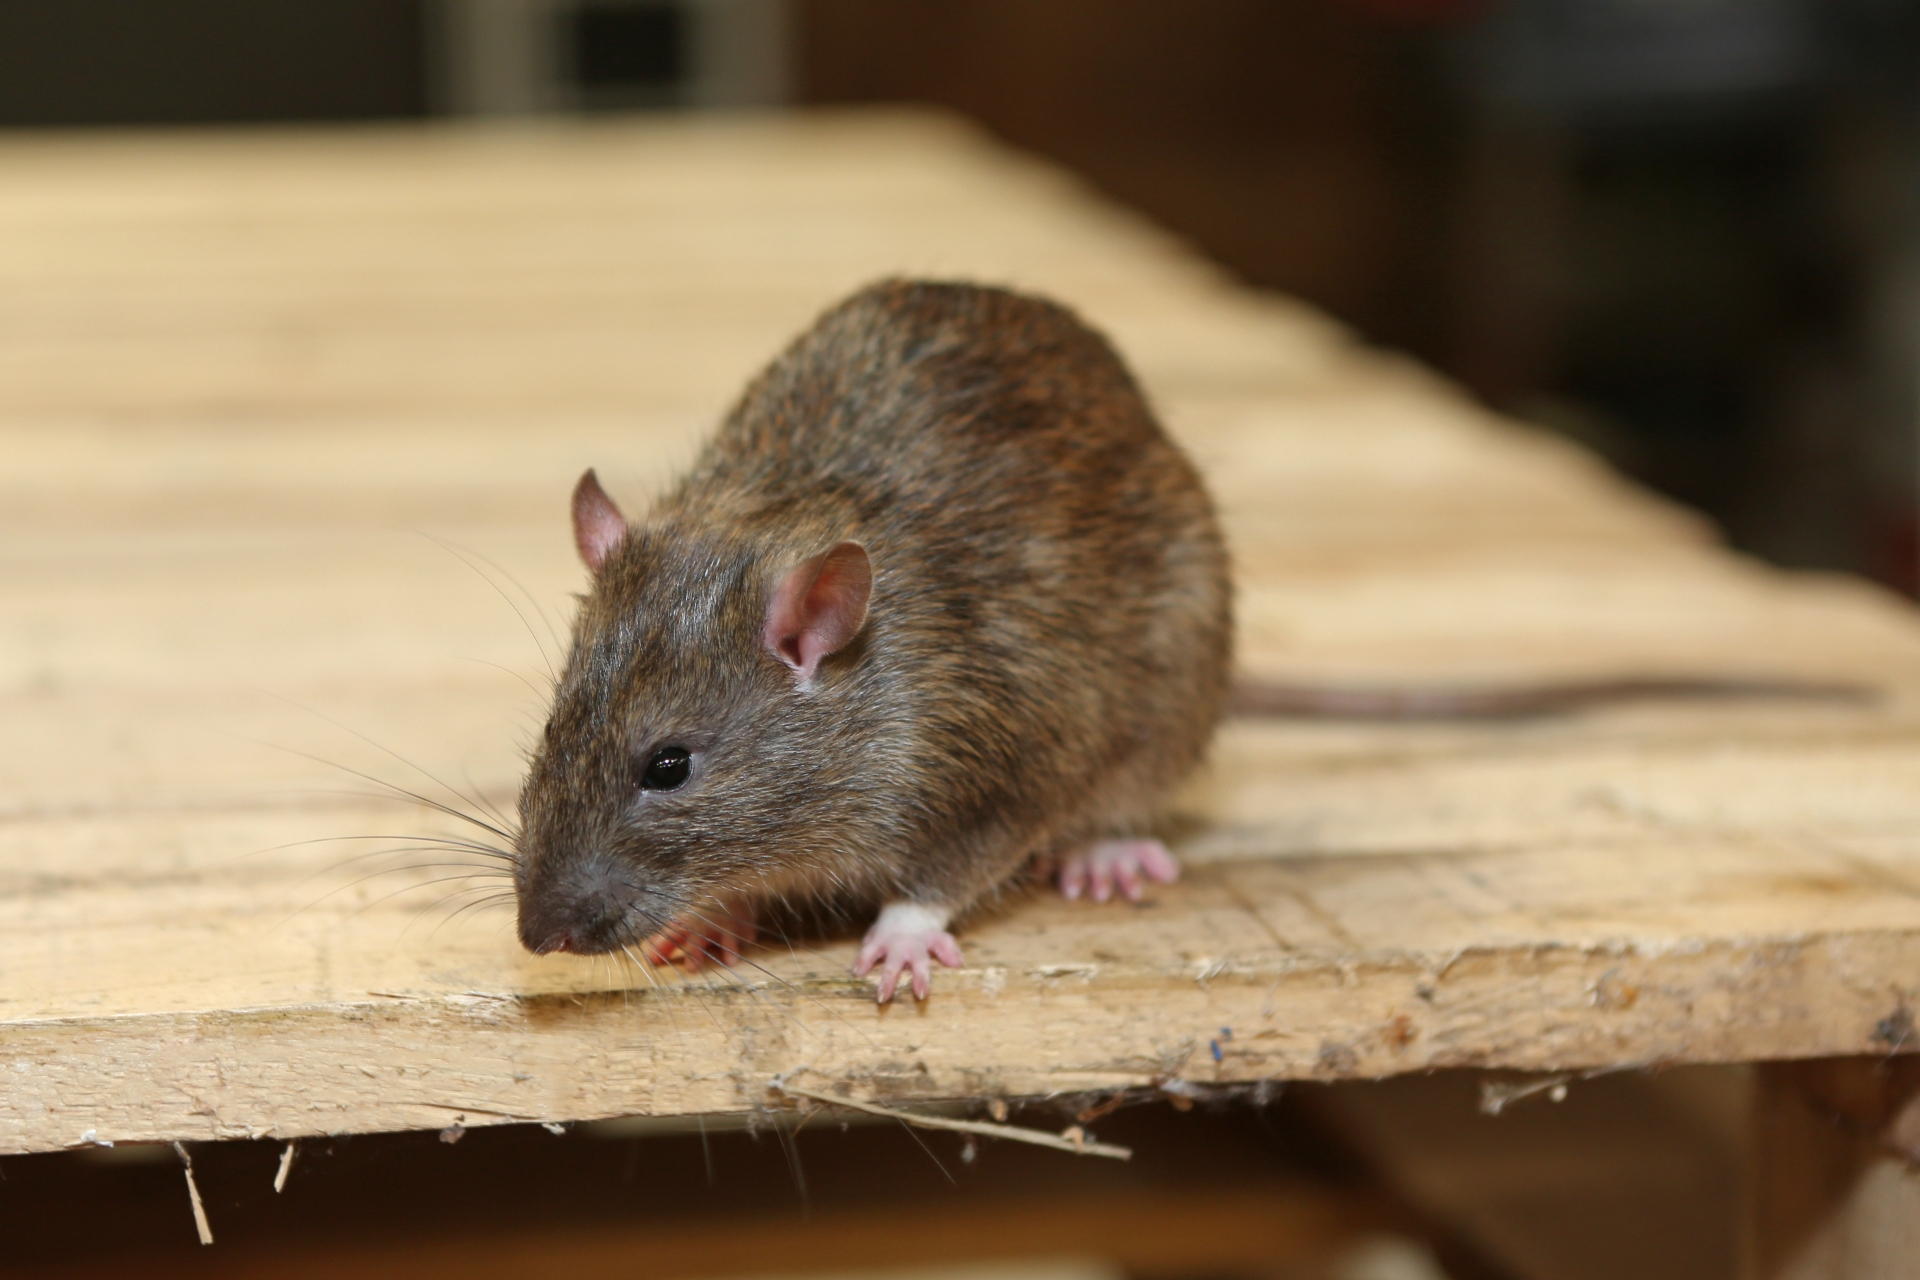 Rat extermination, Pest Control in Becontree Heath, Becontree, RM8. Call Now 020 8166 9746